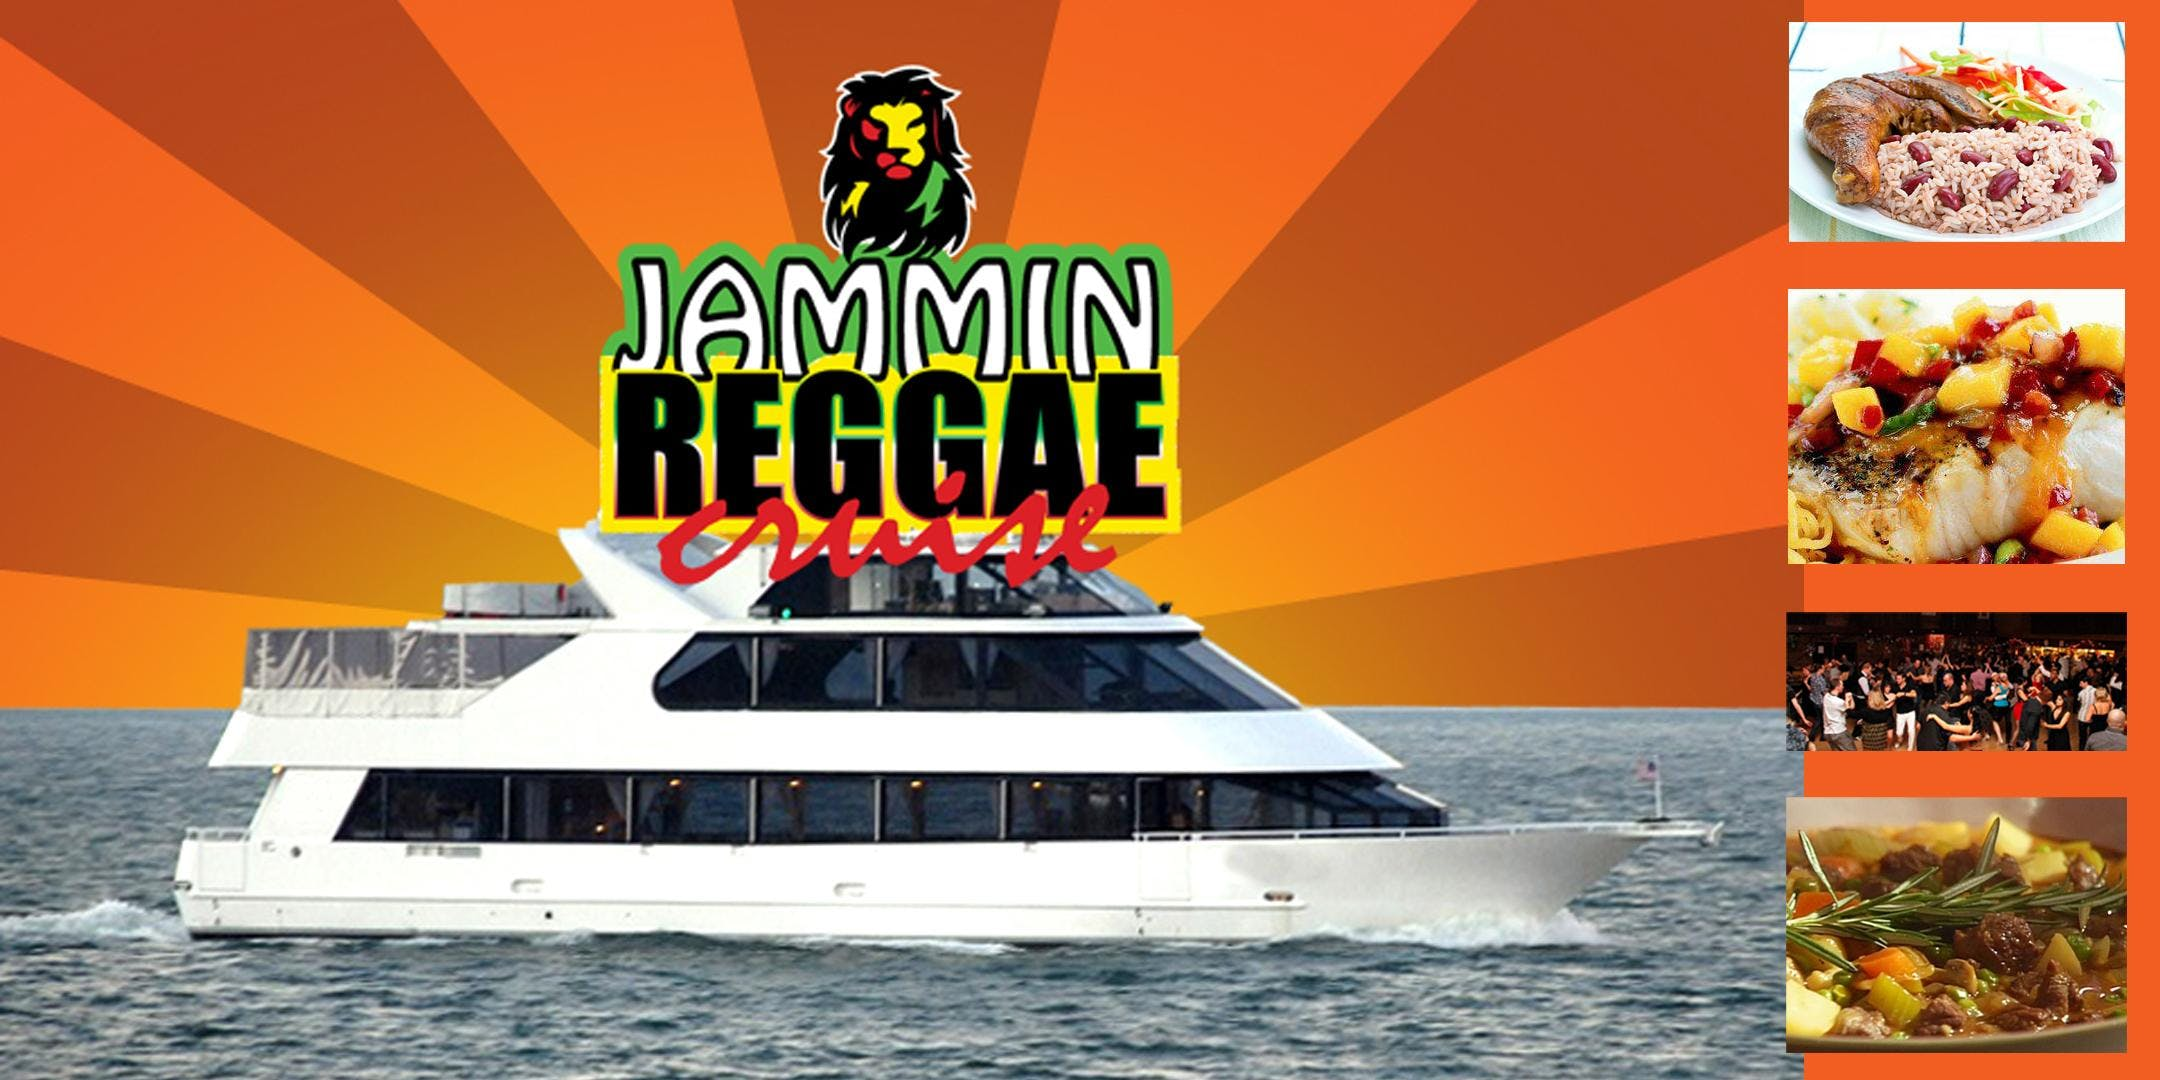 Jammin' Reggae Cruise Feb 22nd @8:00 PM 1340